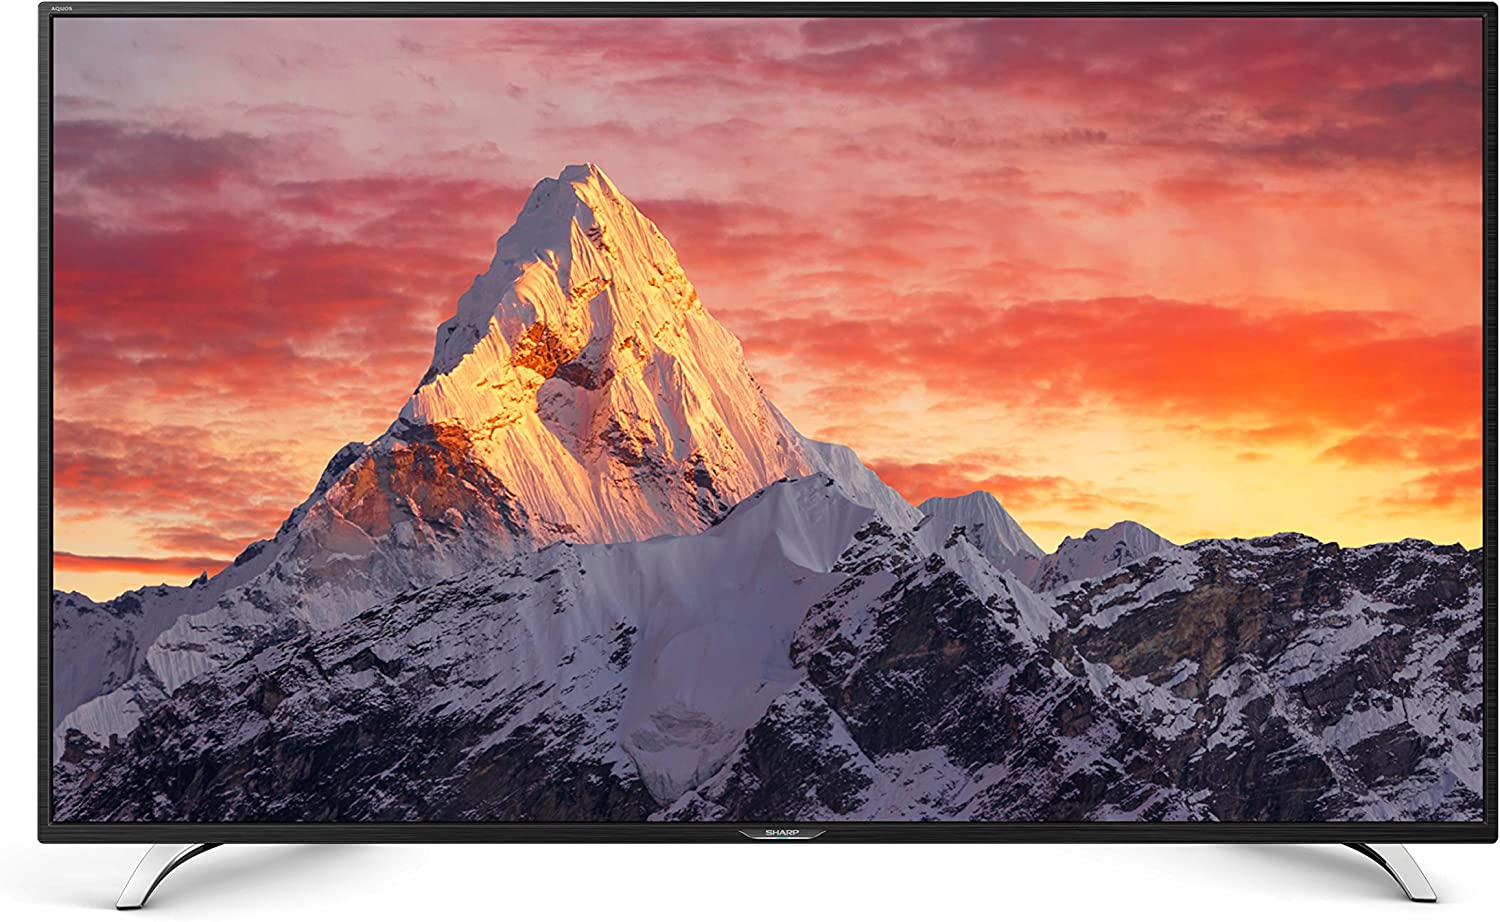 Sharp LC-40CFG6242E - Televisor Smart TV led, de 40, Full HD, altavoces Harman Kardon: Amazon.es: Electrónica